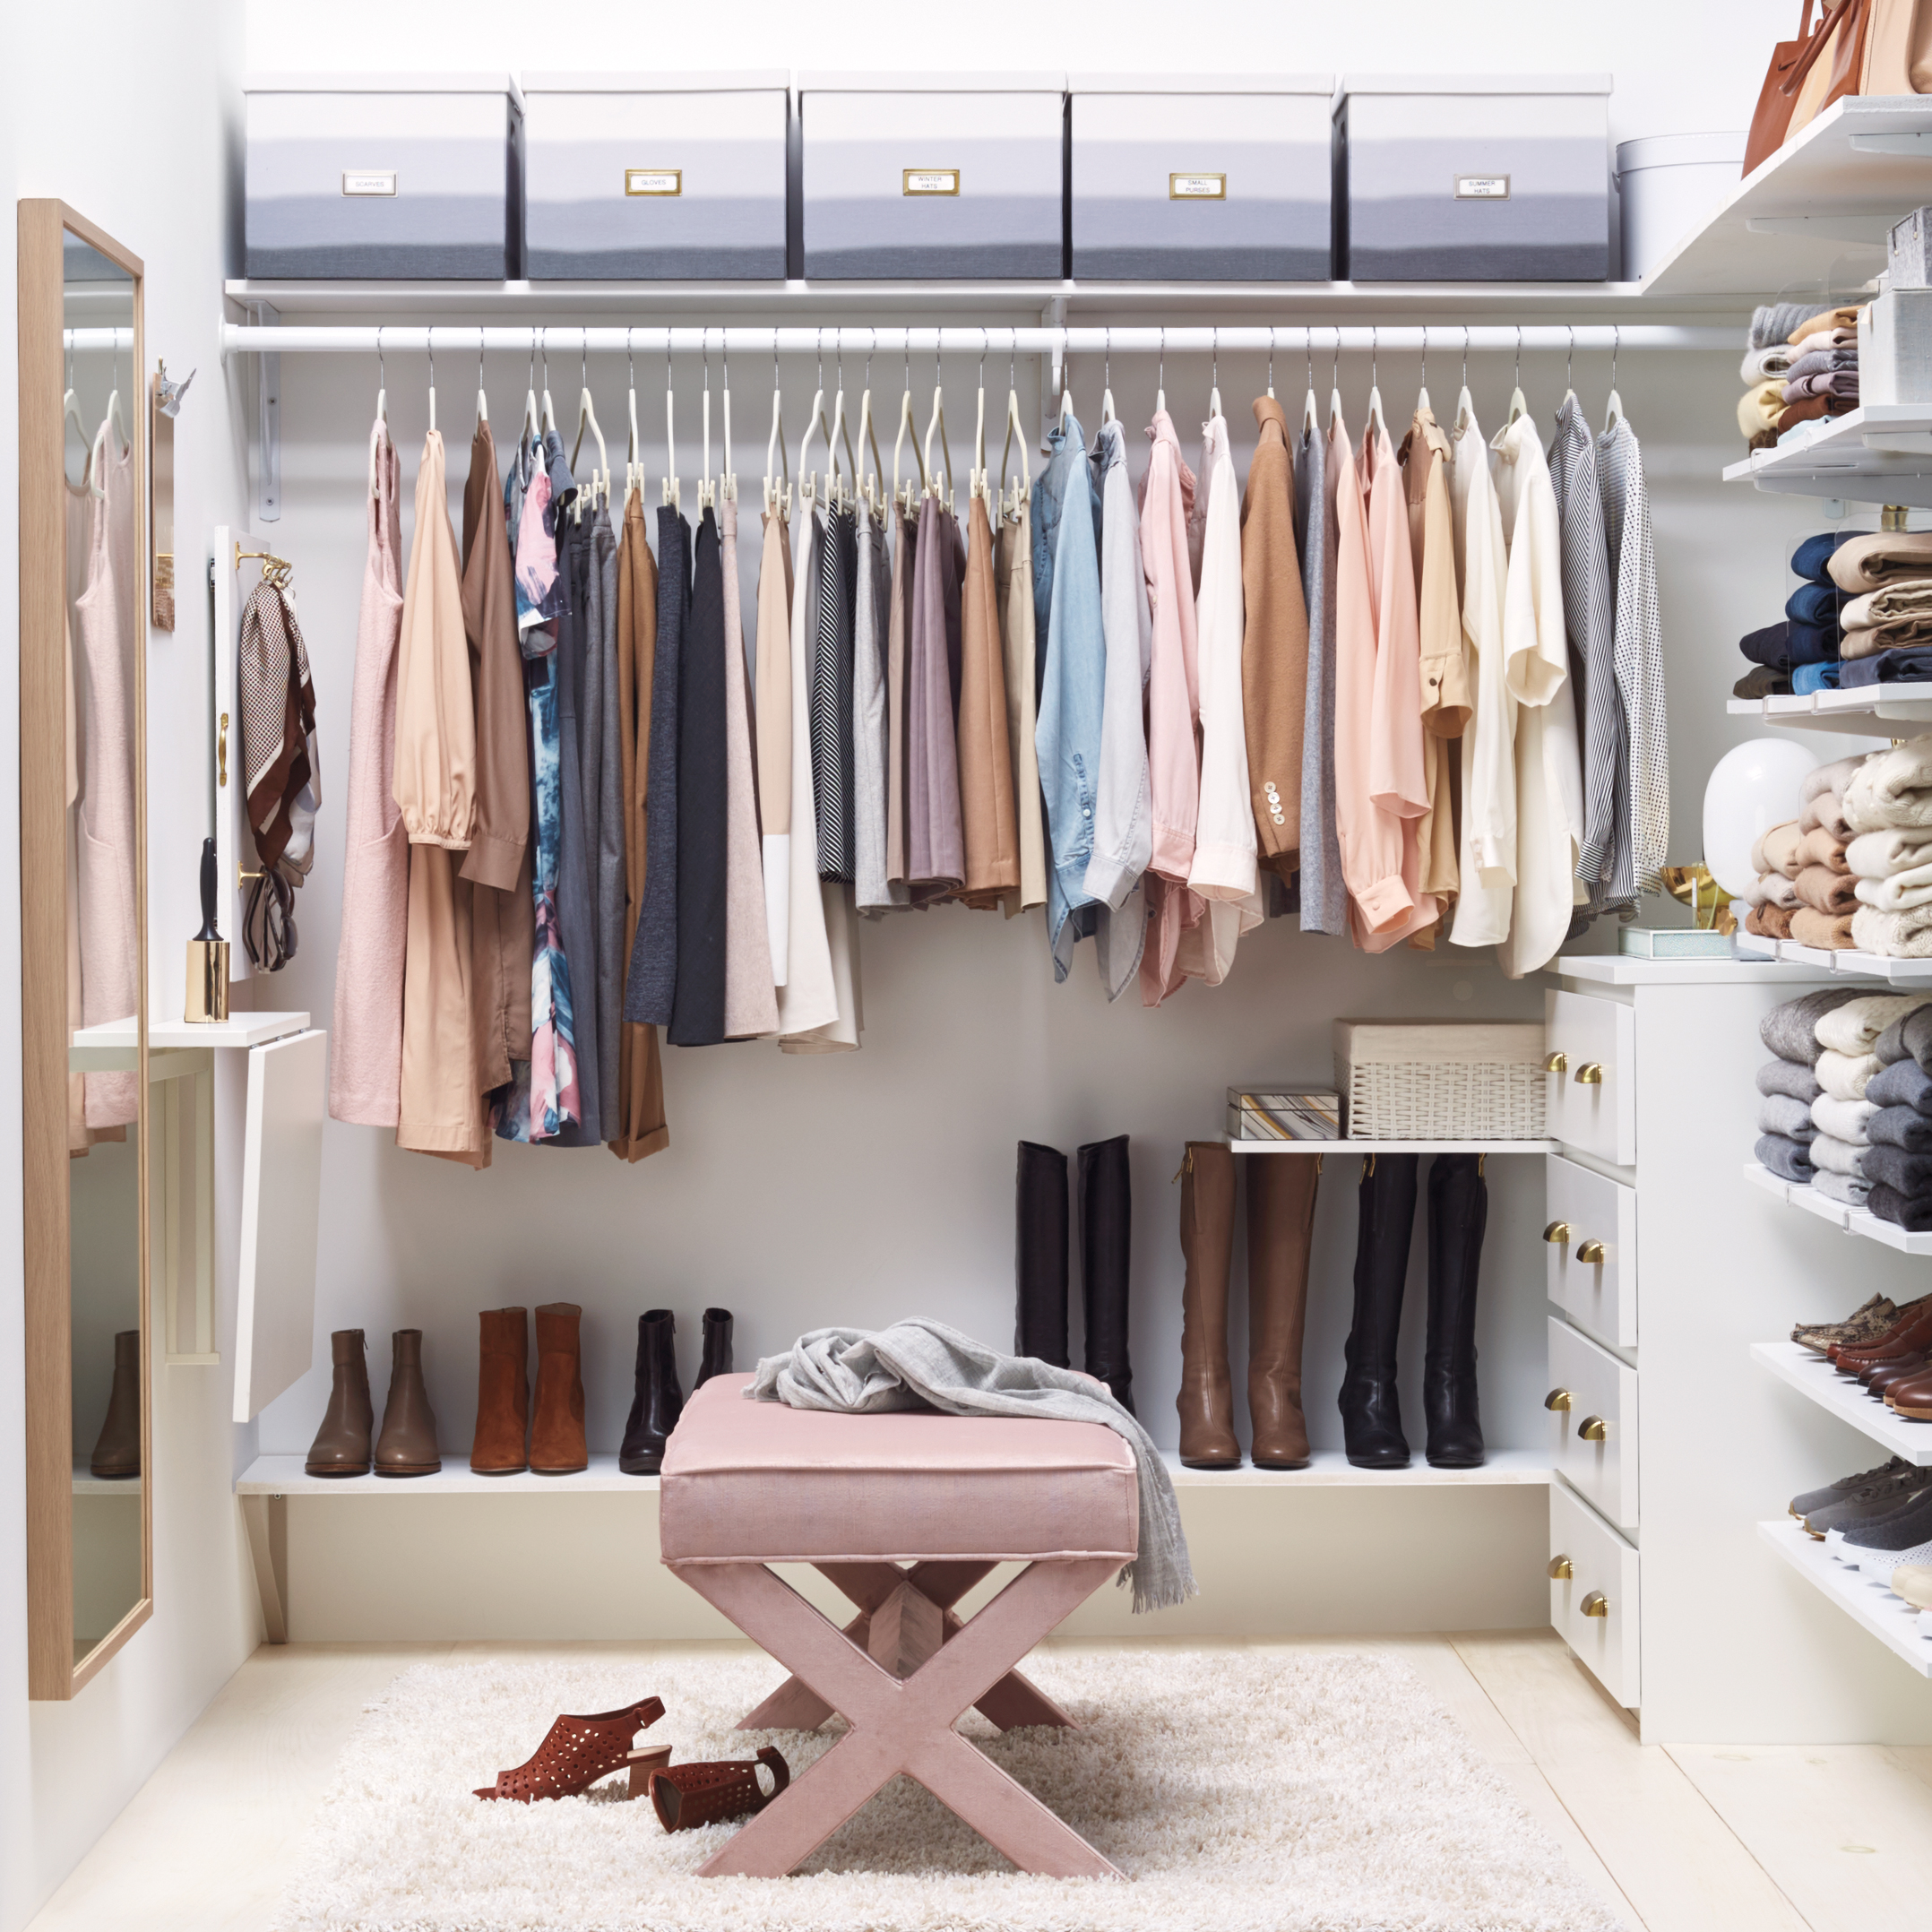 How to Prepare Your Closet for a New Season